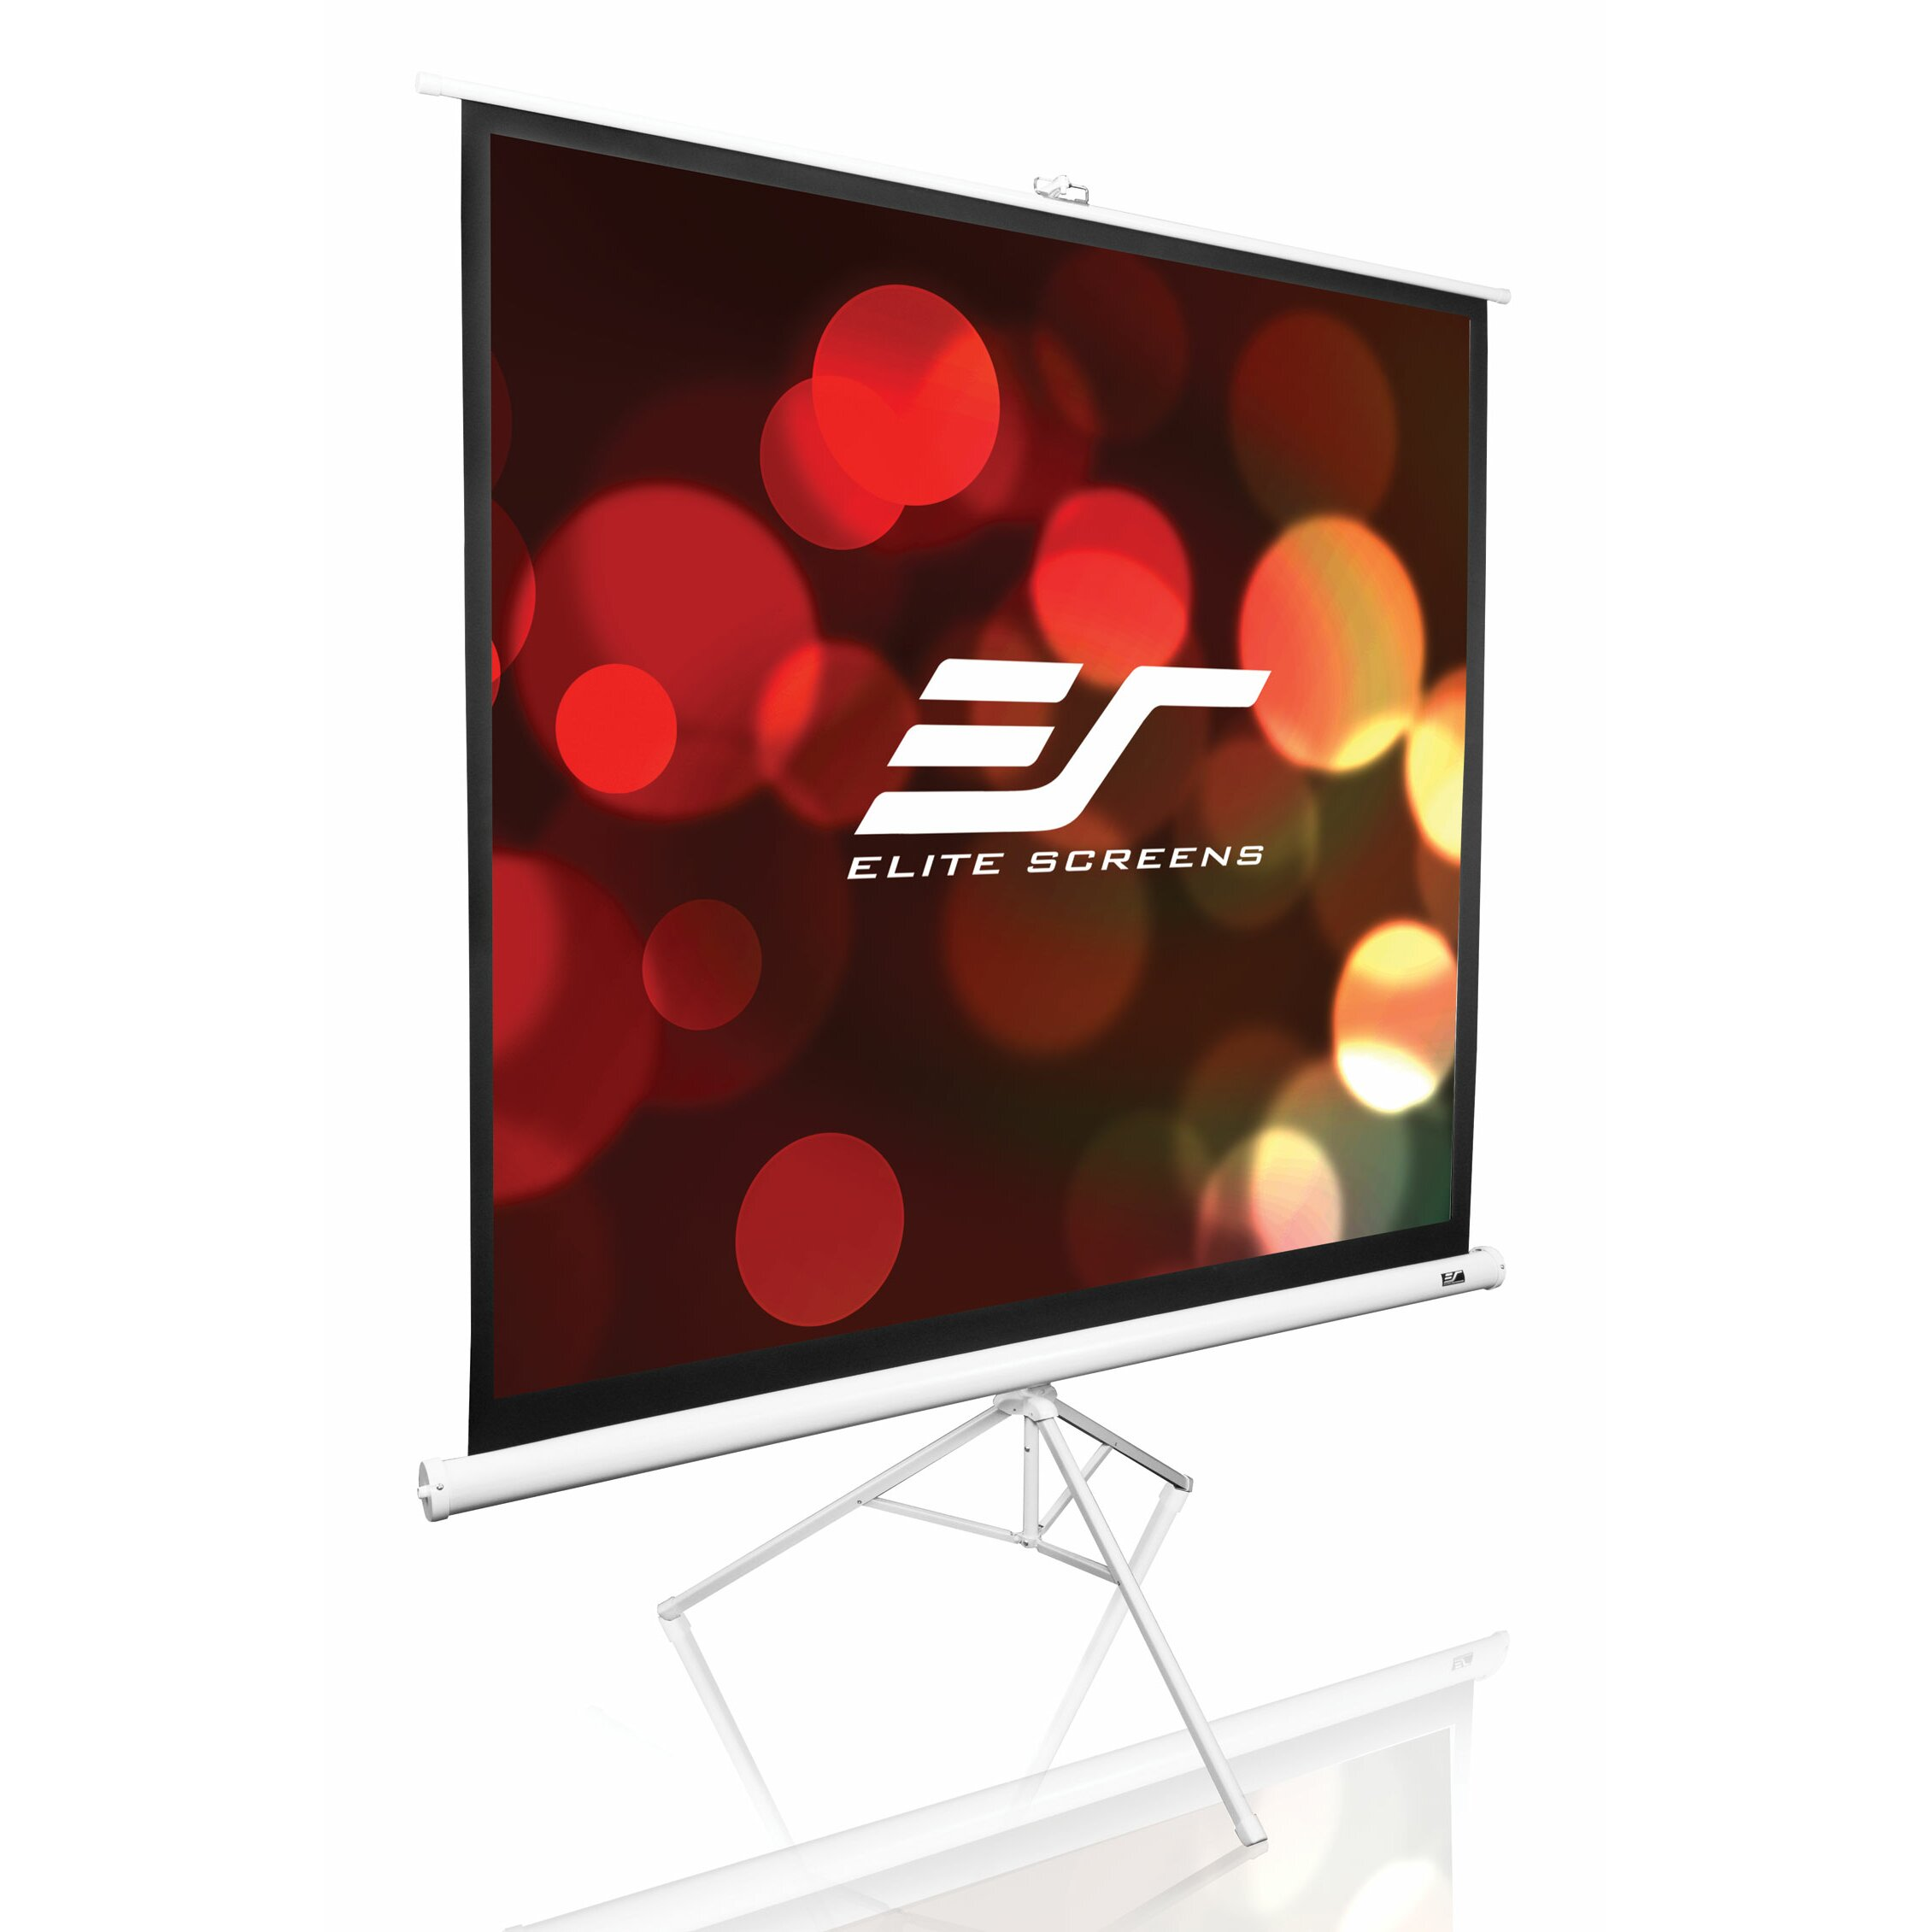 elite projection screens The elite screens spectrum series electric150h is available, along with other electric projector screens at the projector screen store includes free shipping.